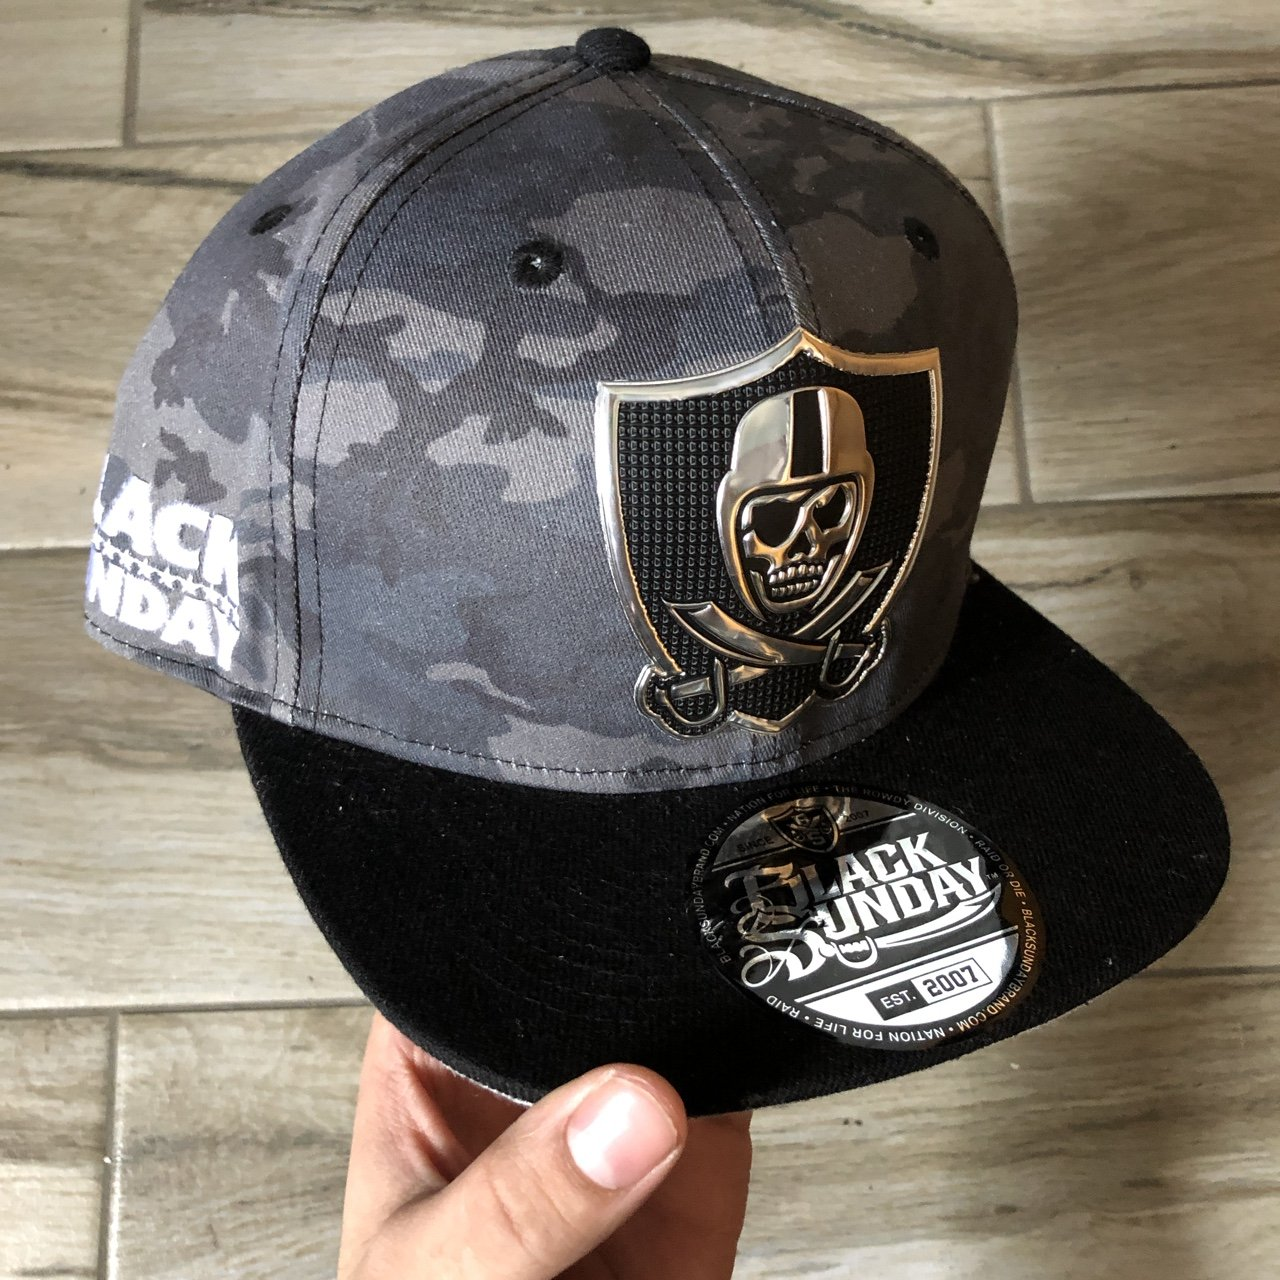 Black Sunday Raider Nation Inspired SnapBack cap. Very cool - Depop a586dce22